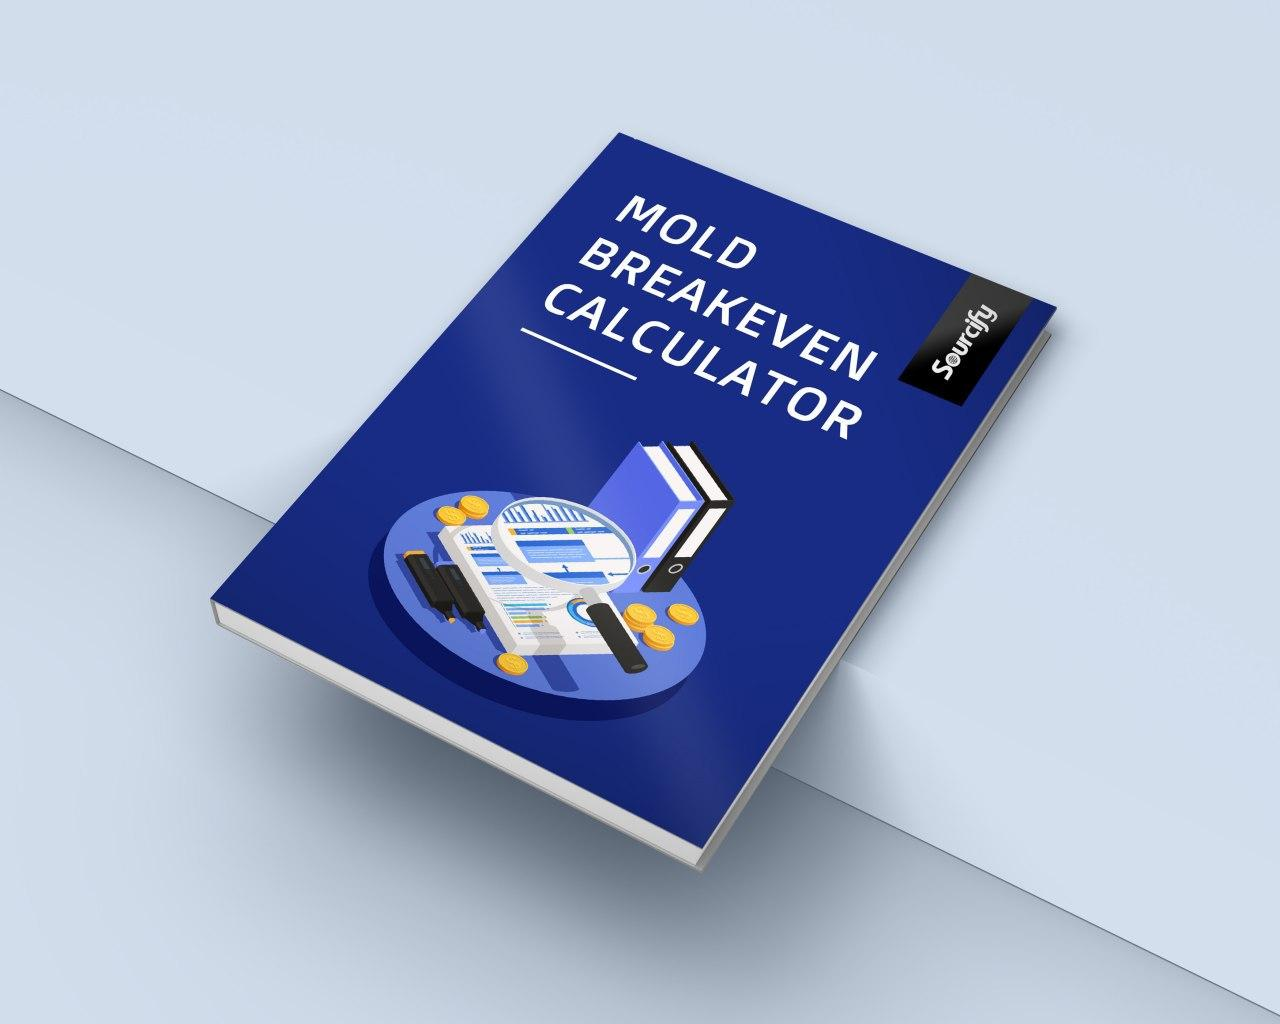 Mold Breakeven Calculator